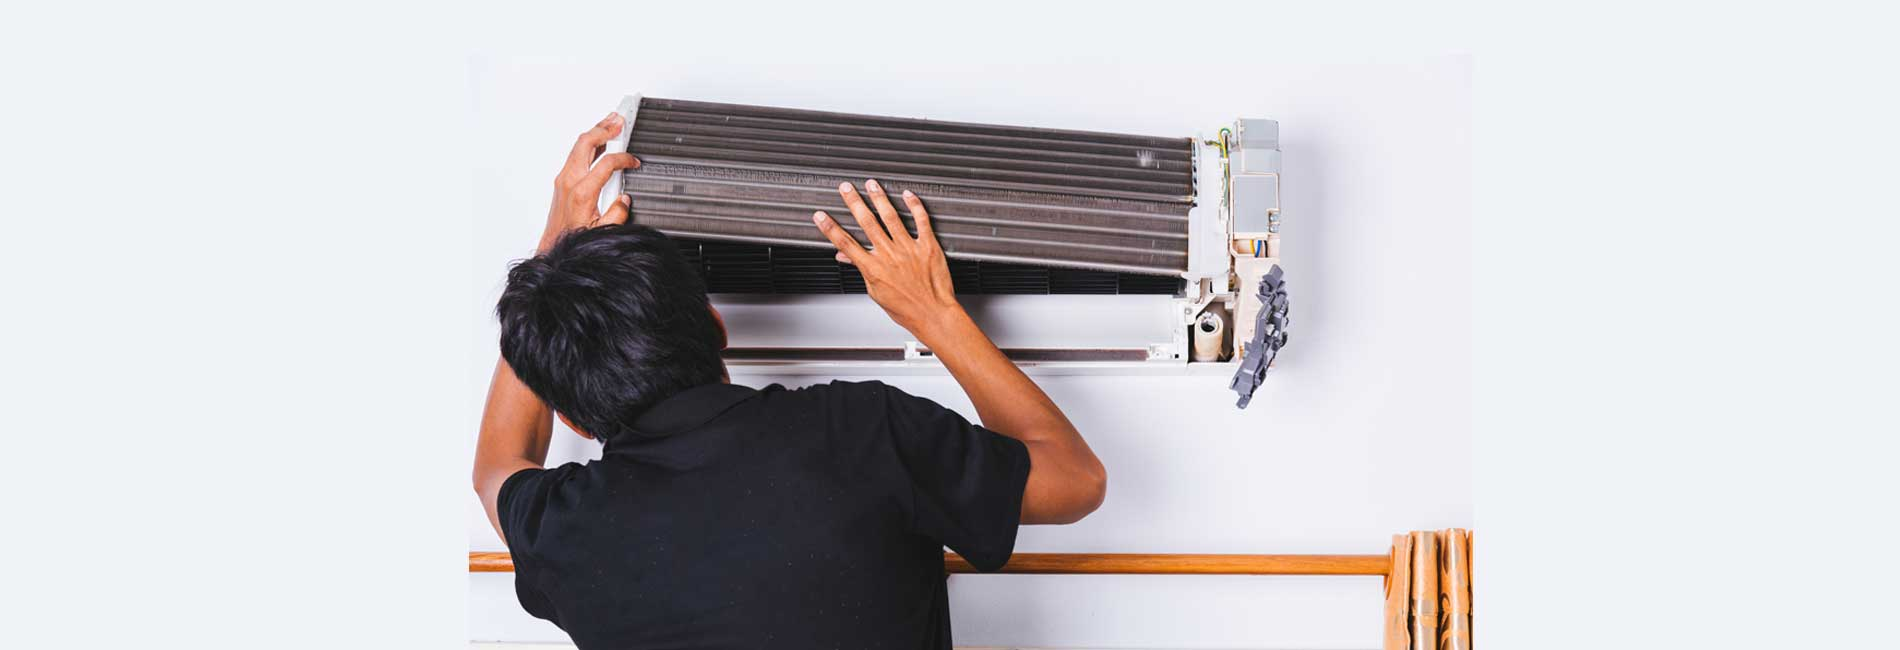 Samsung Split AC Uninstallation in Uthandi